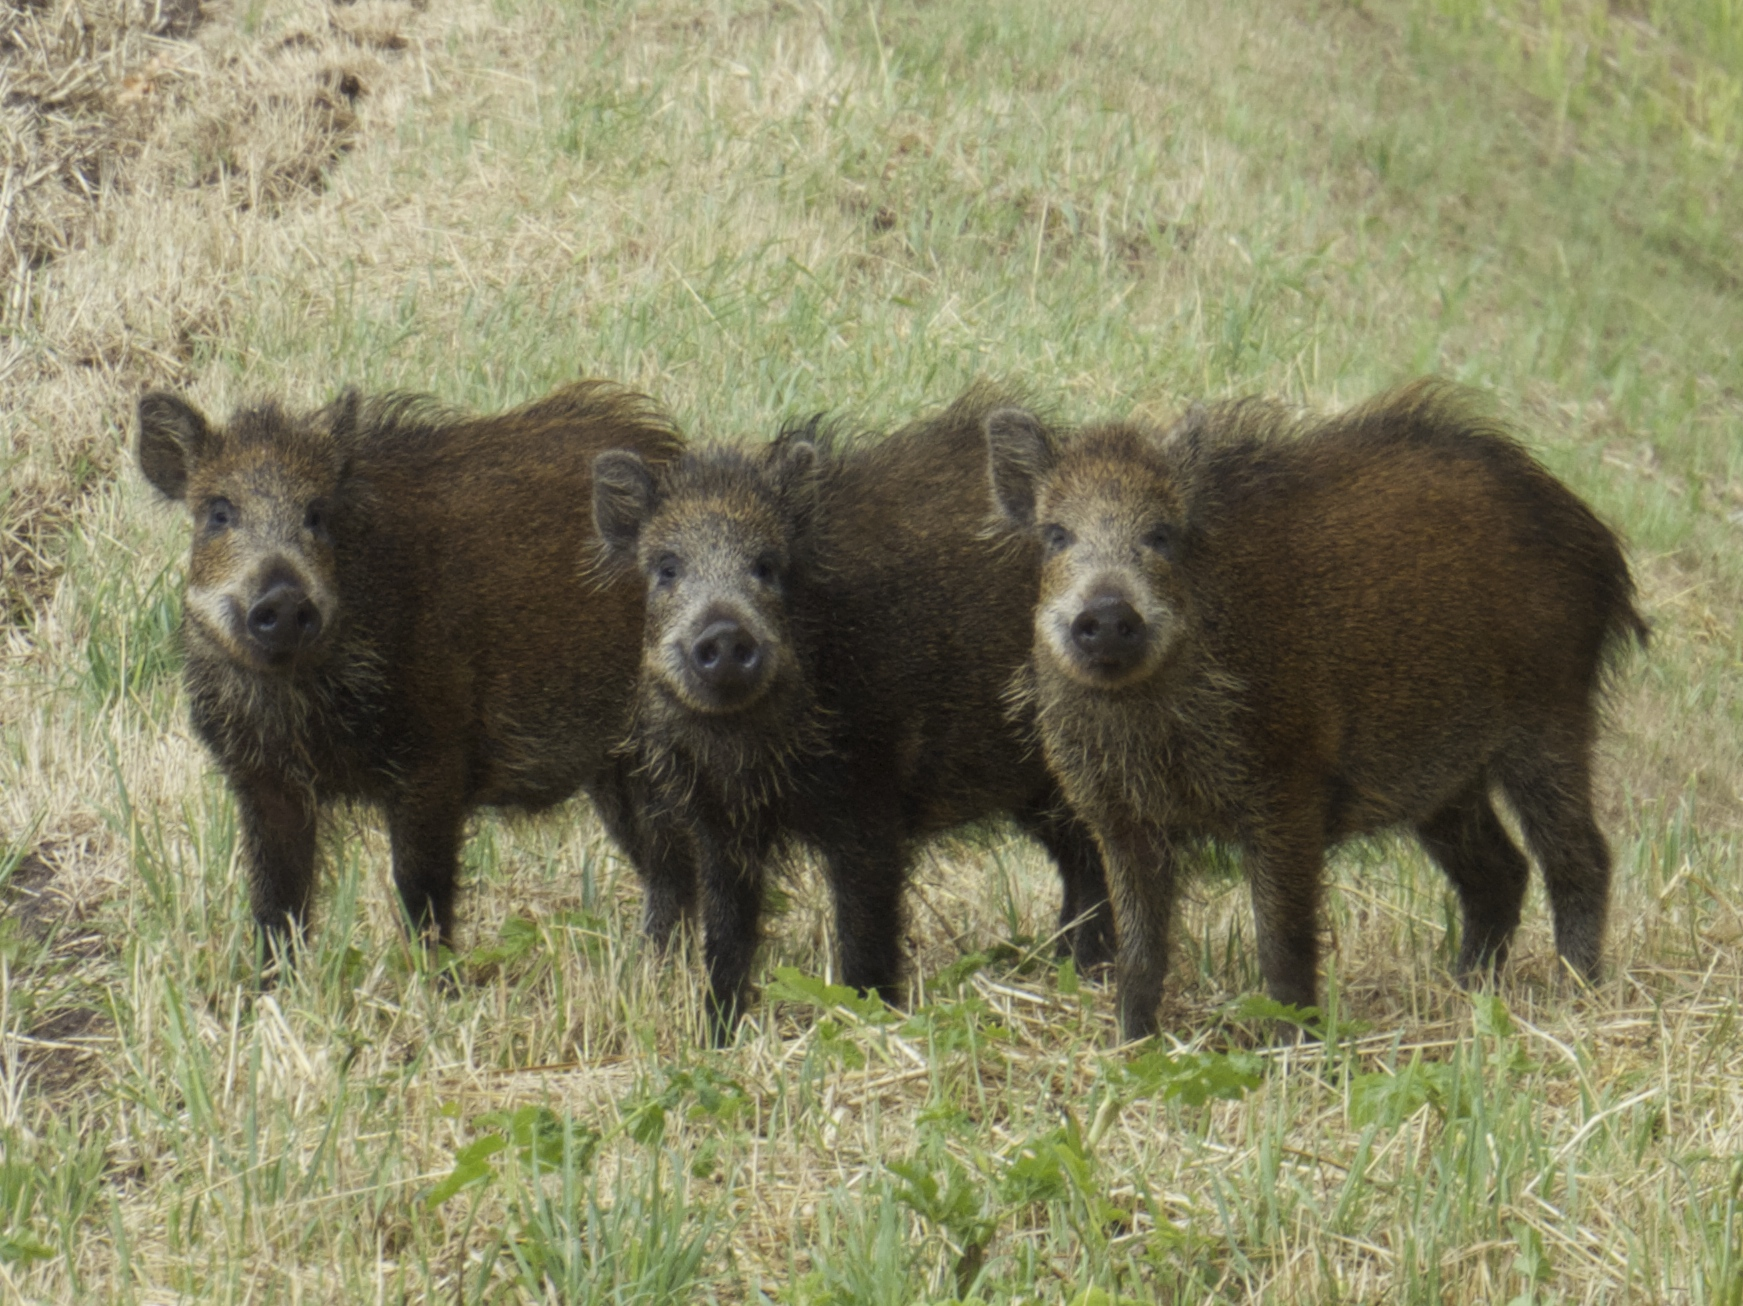 We also saw the three little wild pigs!